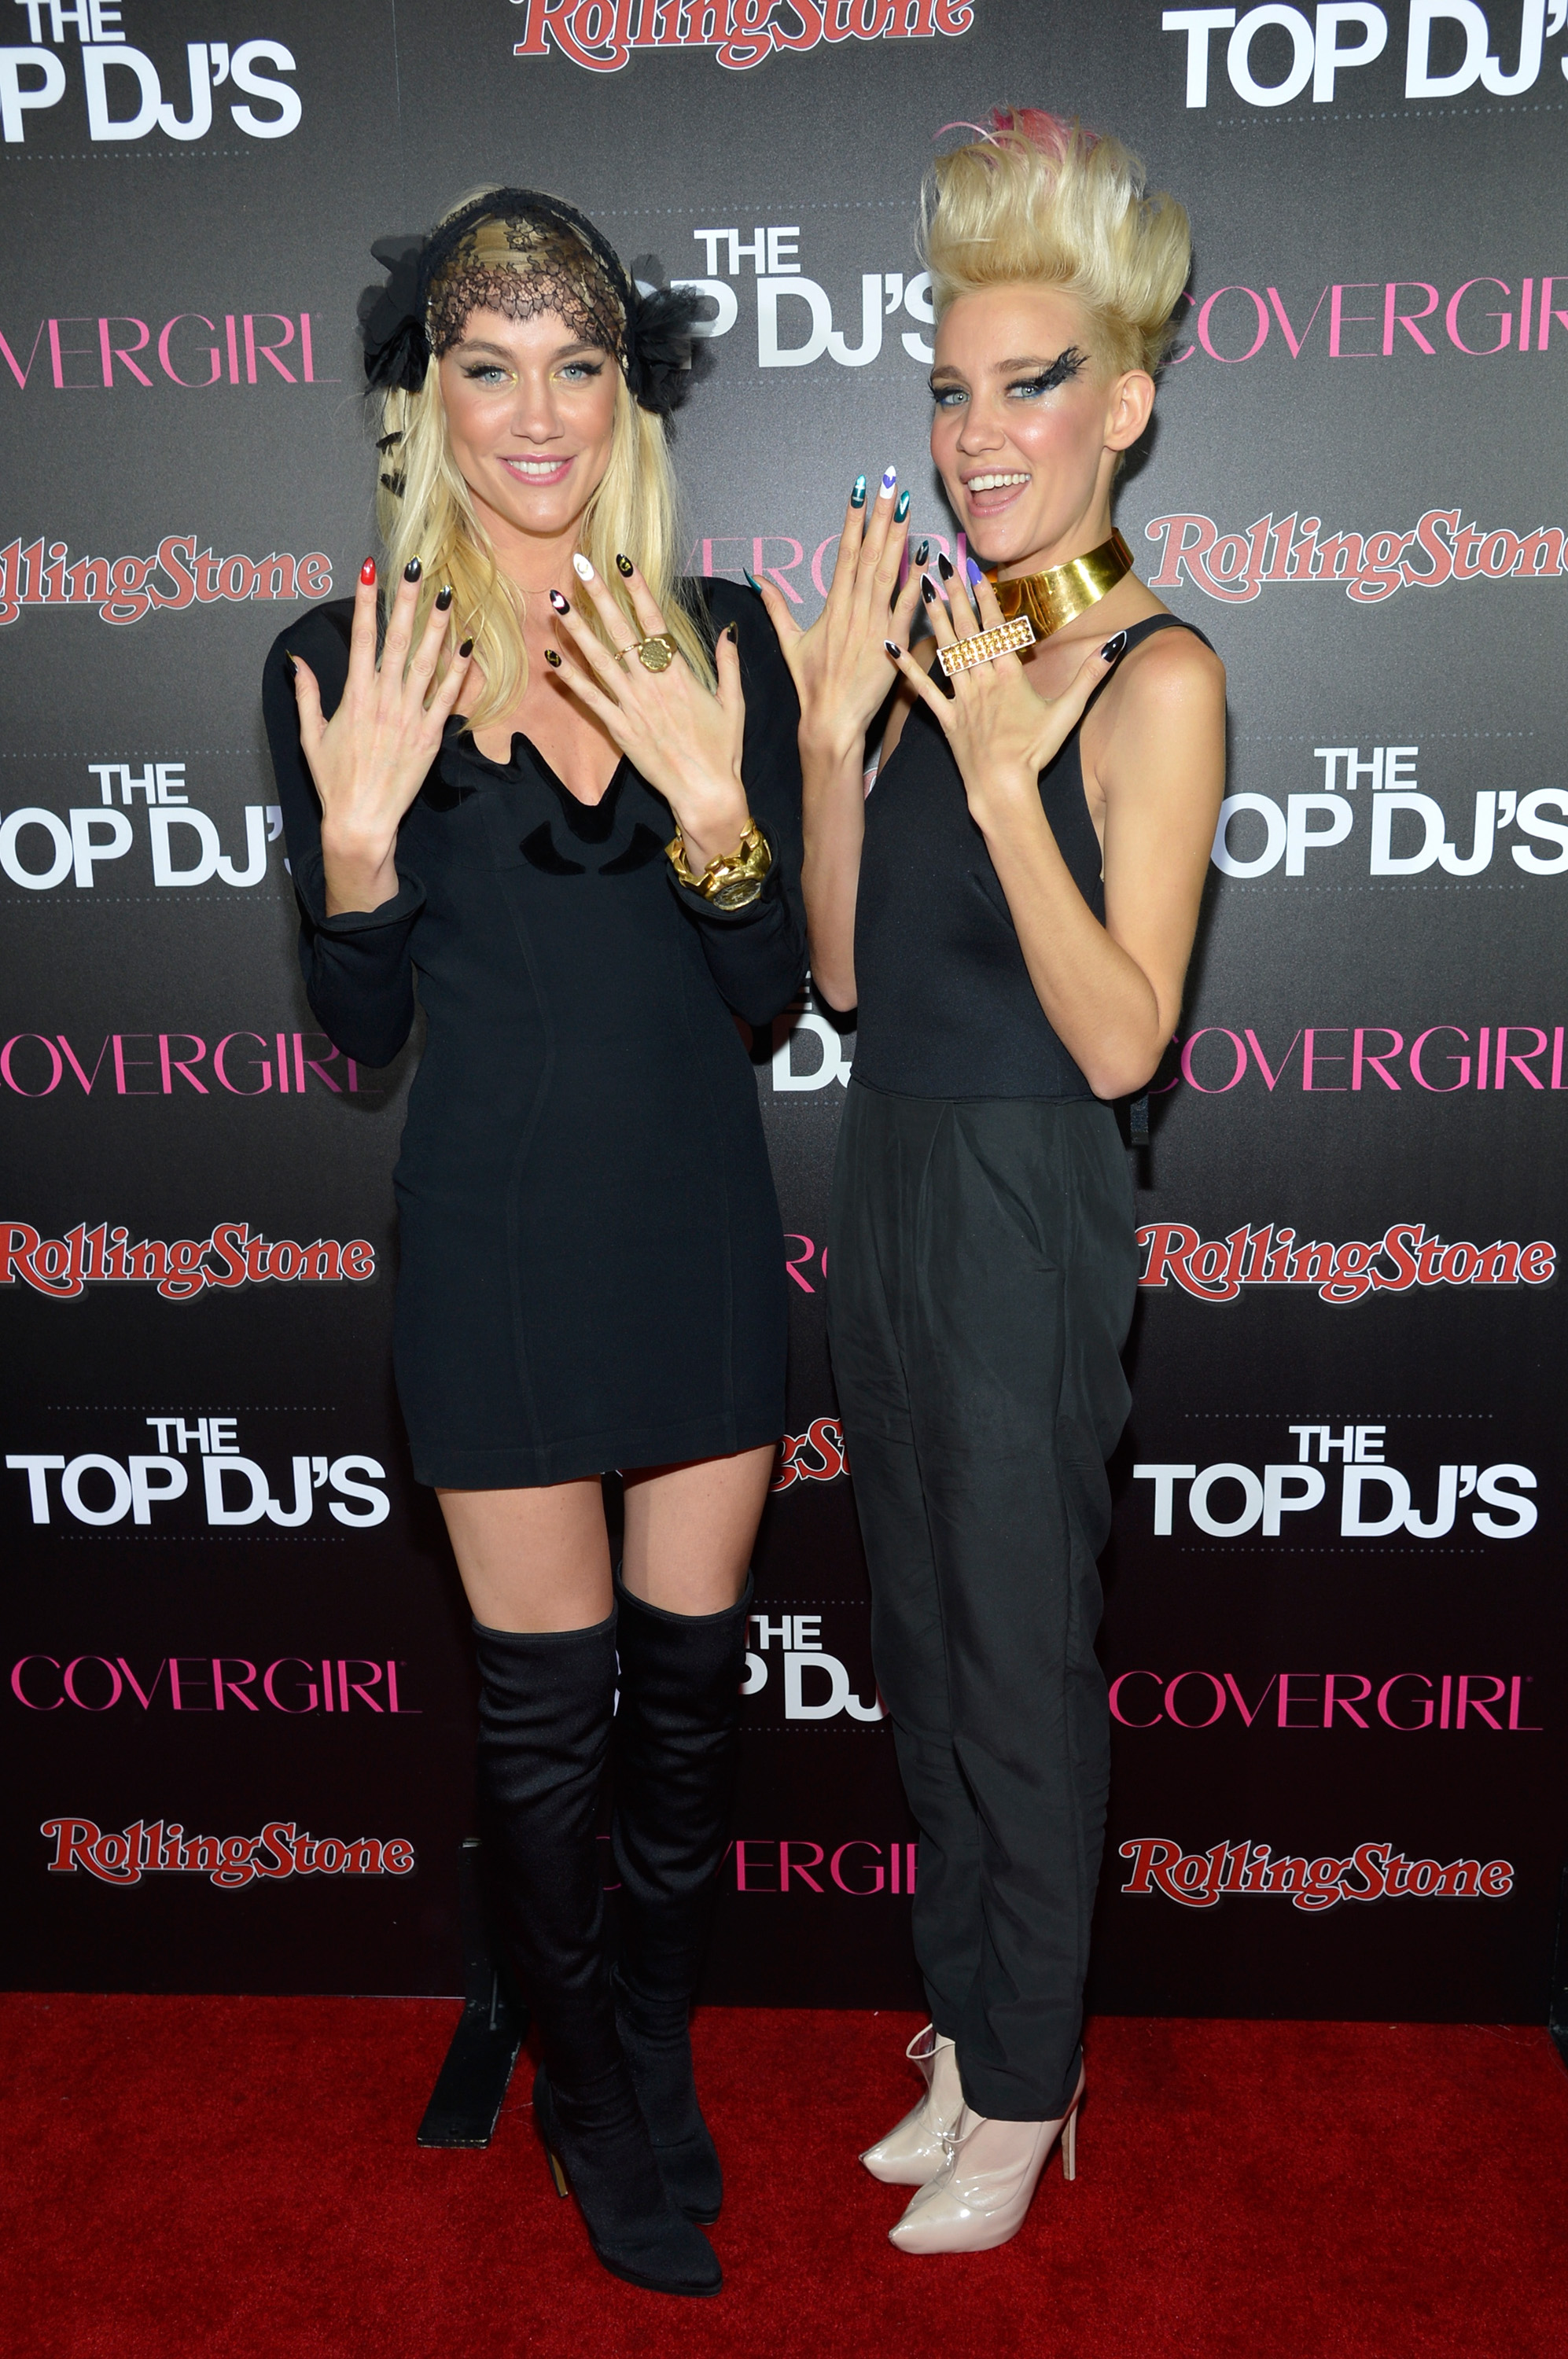 nervo at the covergirl rolling stone party Get to Know the Aussie DJ Duo Nervo, the Latest CoverGirls